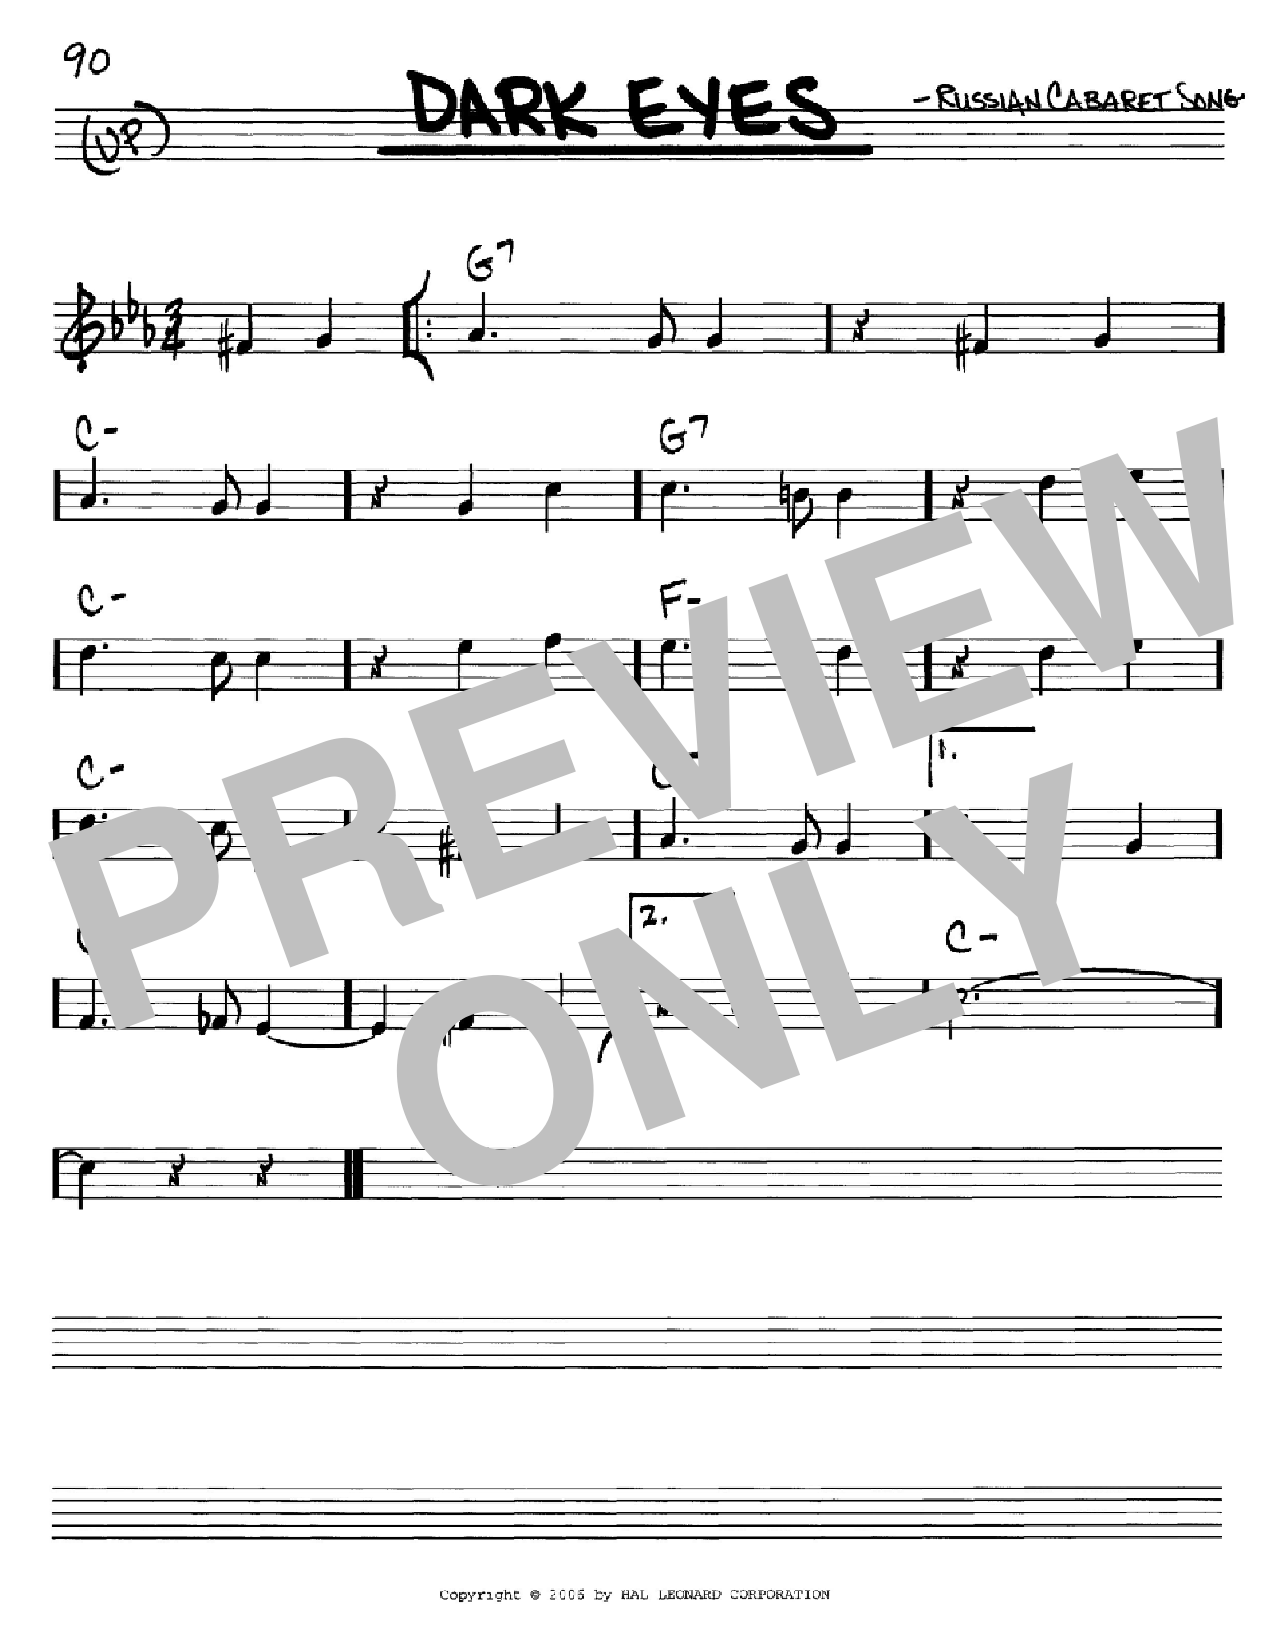 The New Real Book Volume 3 Bass Clef Edition Sheet Music.pdf